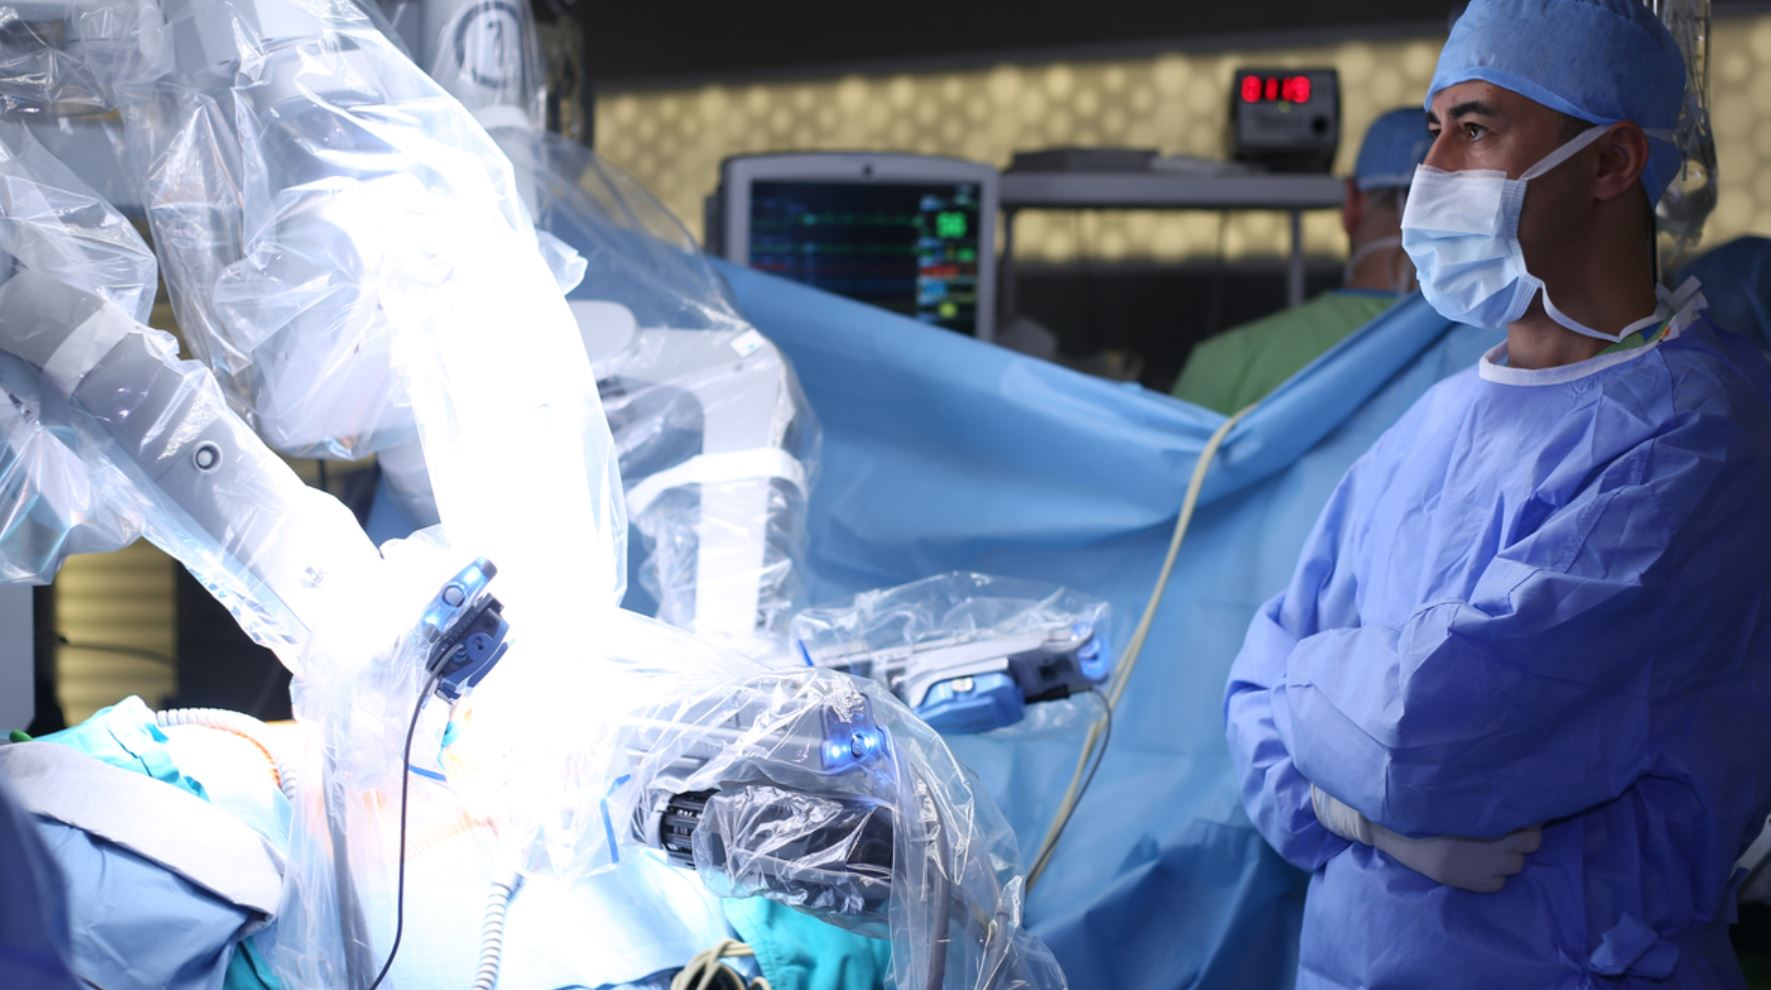 Medtronic to boost its AI, surgical robotics work with new acquisition of Digital Surgery - MedTech News